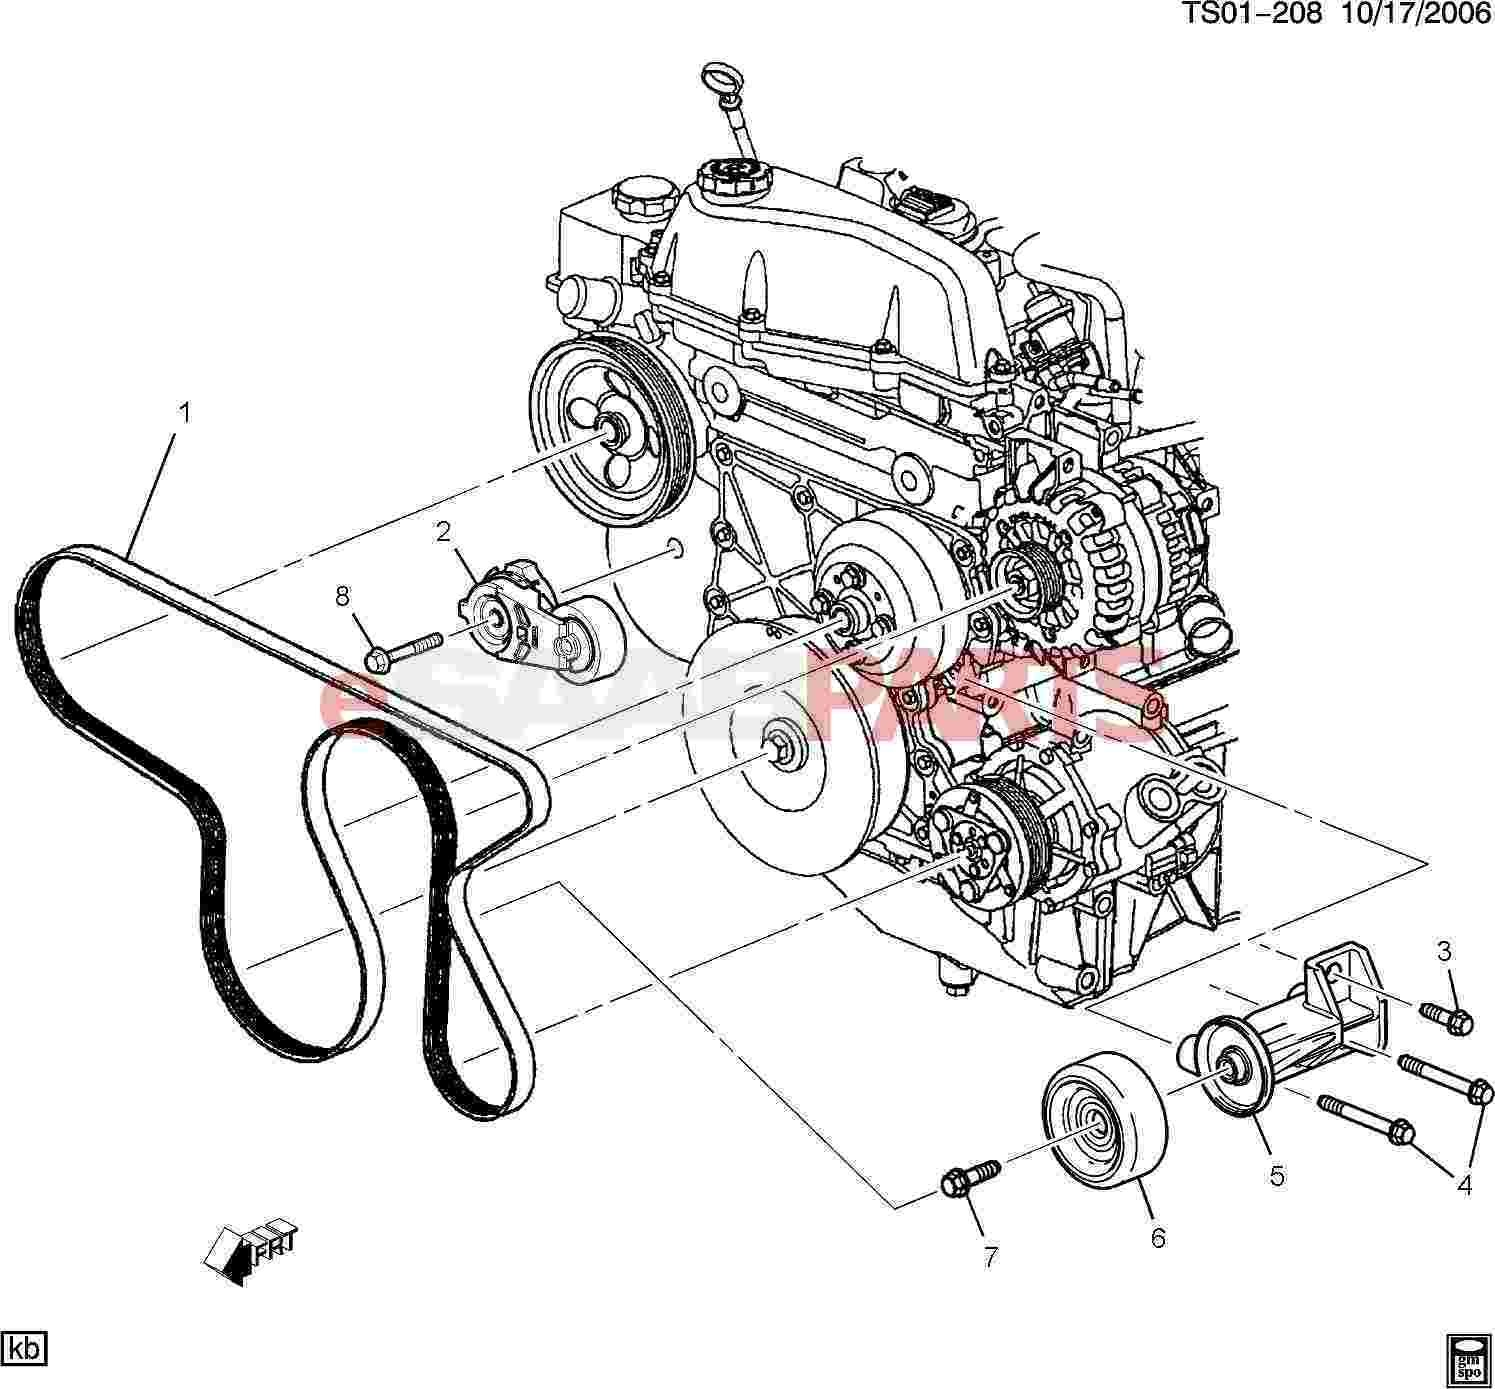 2000 toyota Corolla Engine Diagram ] Saab Bolt Hfh M10x1 5×35 32thd 22 3 O D Mach 10 9 Of 2000 toyota Corolla Engine Diagram